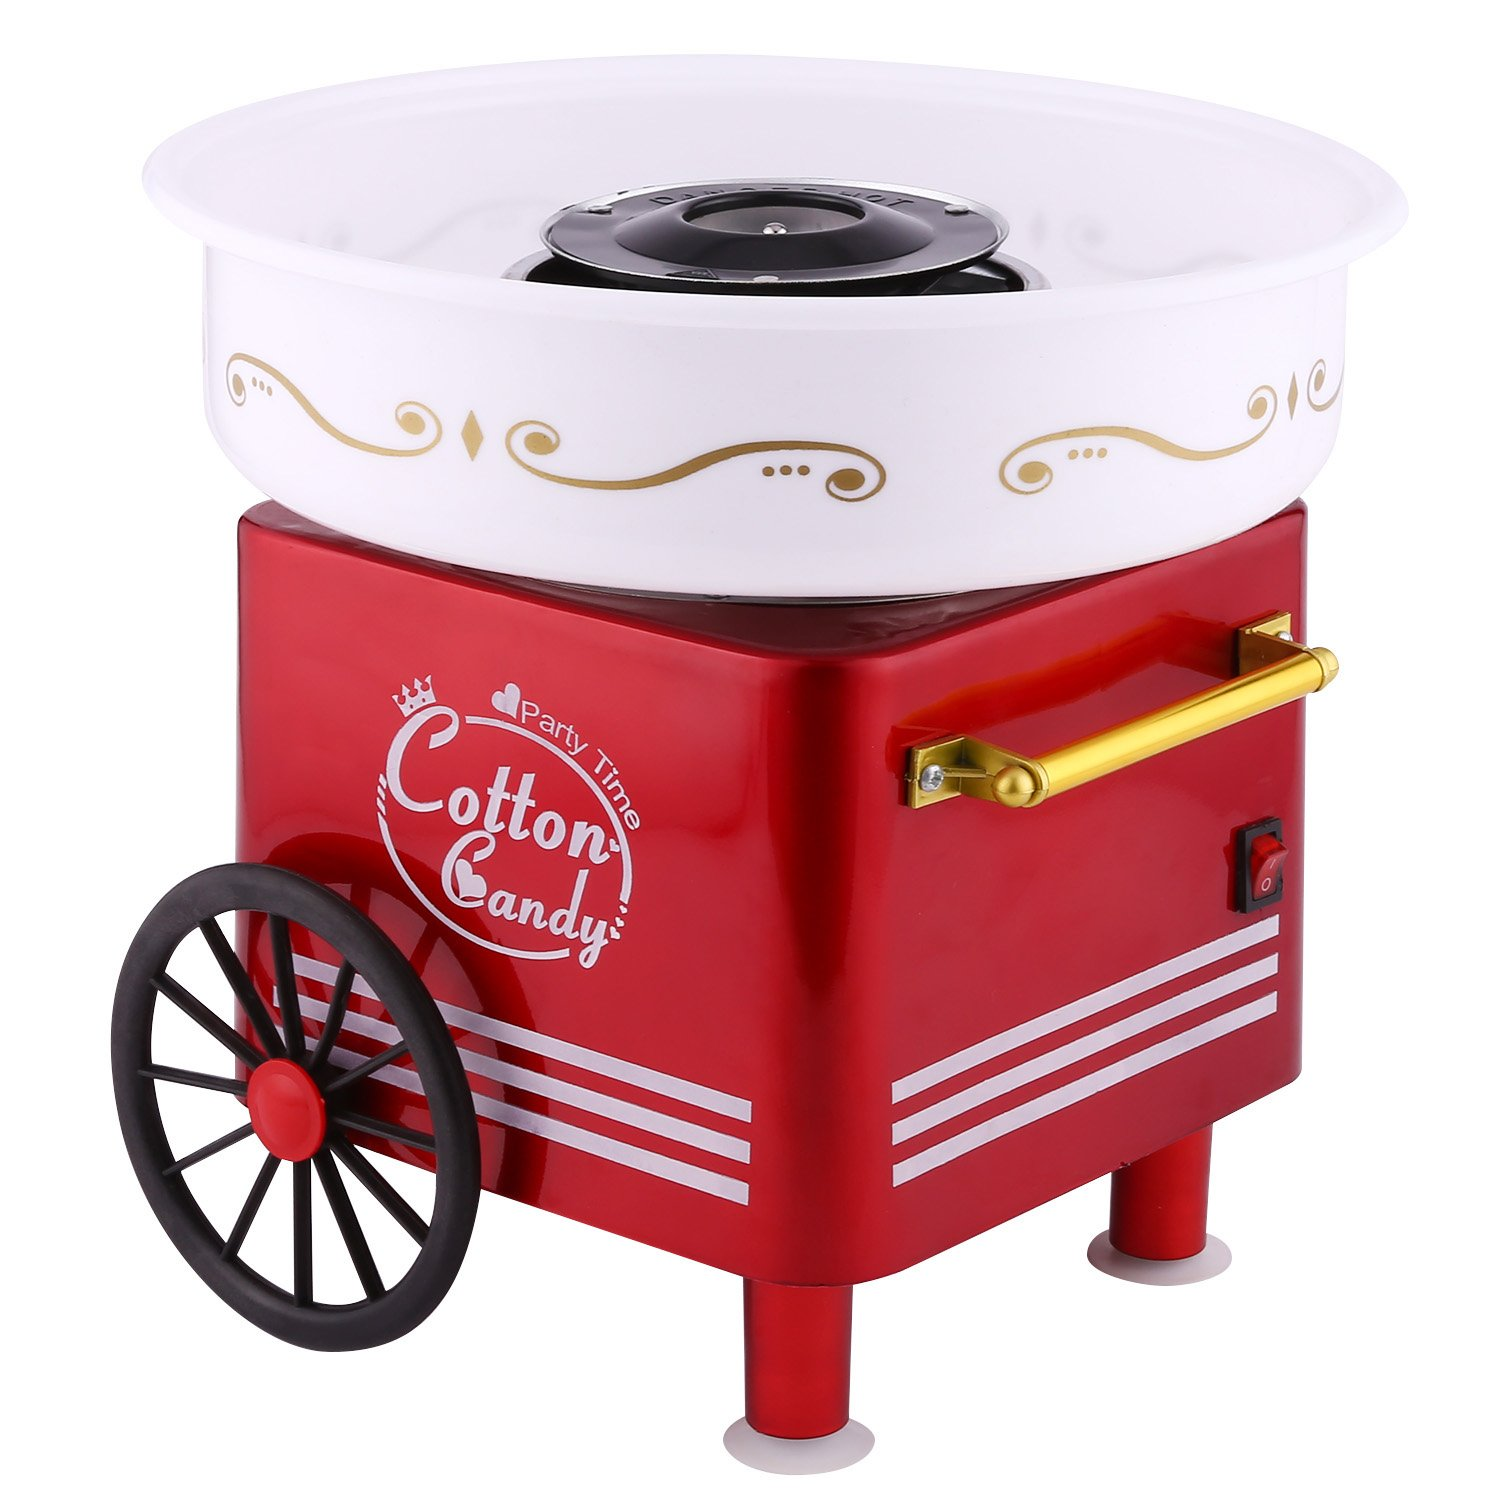 Vintage Sugar, SugarFree, or Hard Candy Machine Cotton Candy Floss Maker Birthday Party Supplies (Red) by Ferty (Image #1)